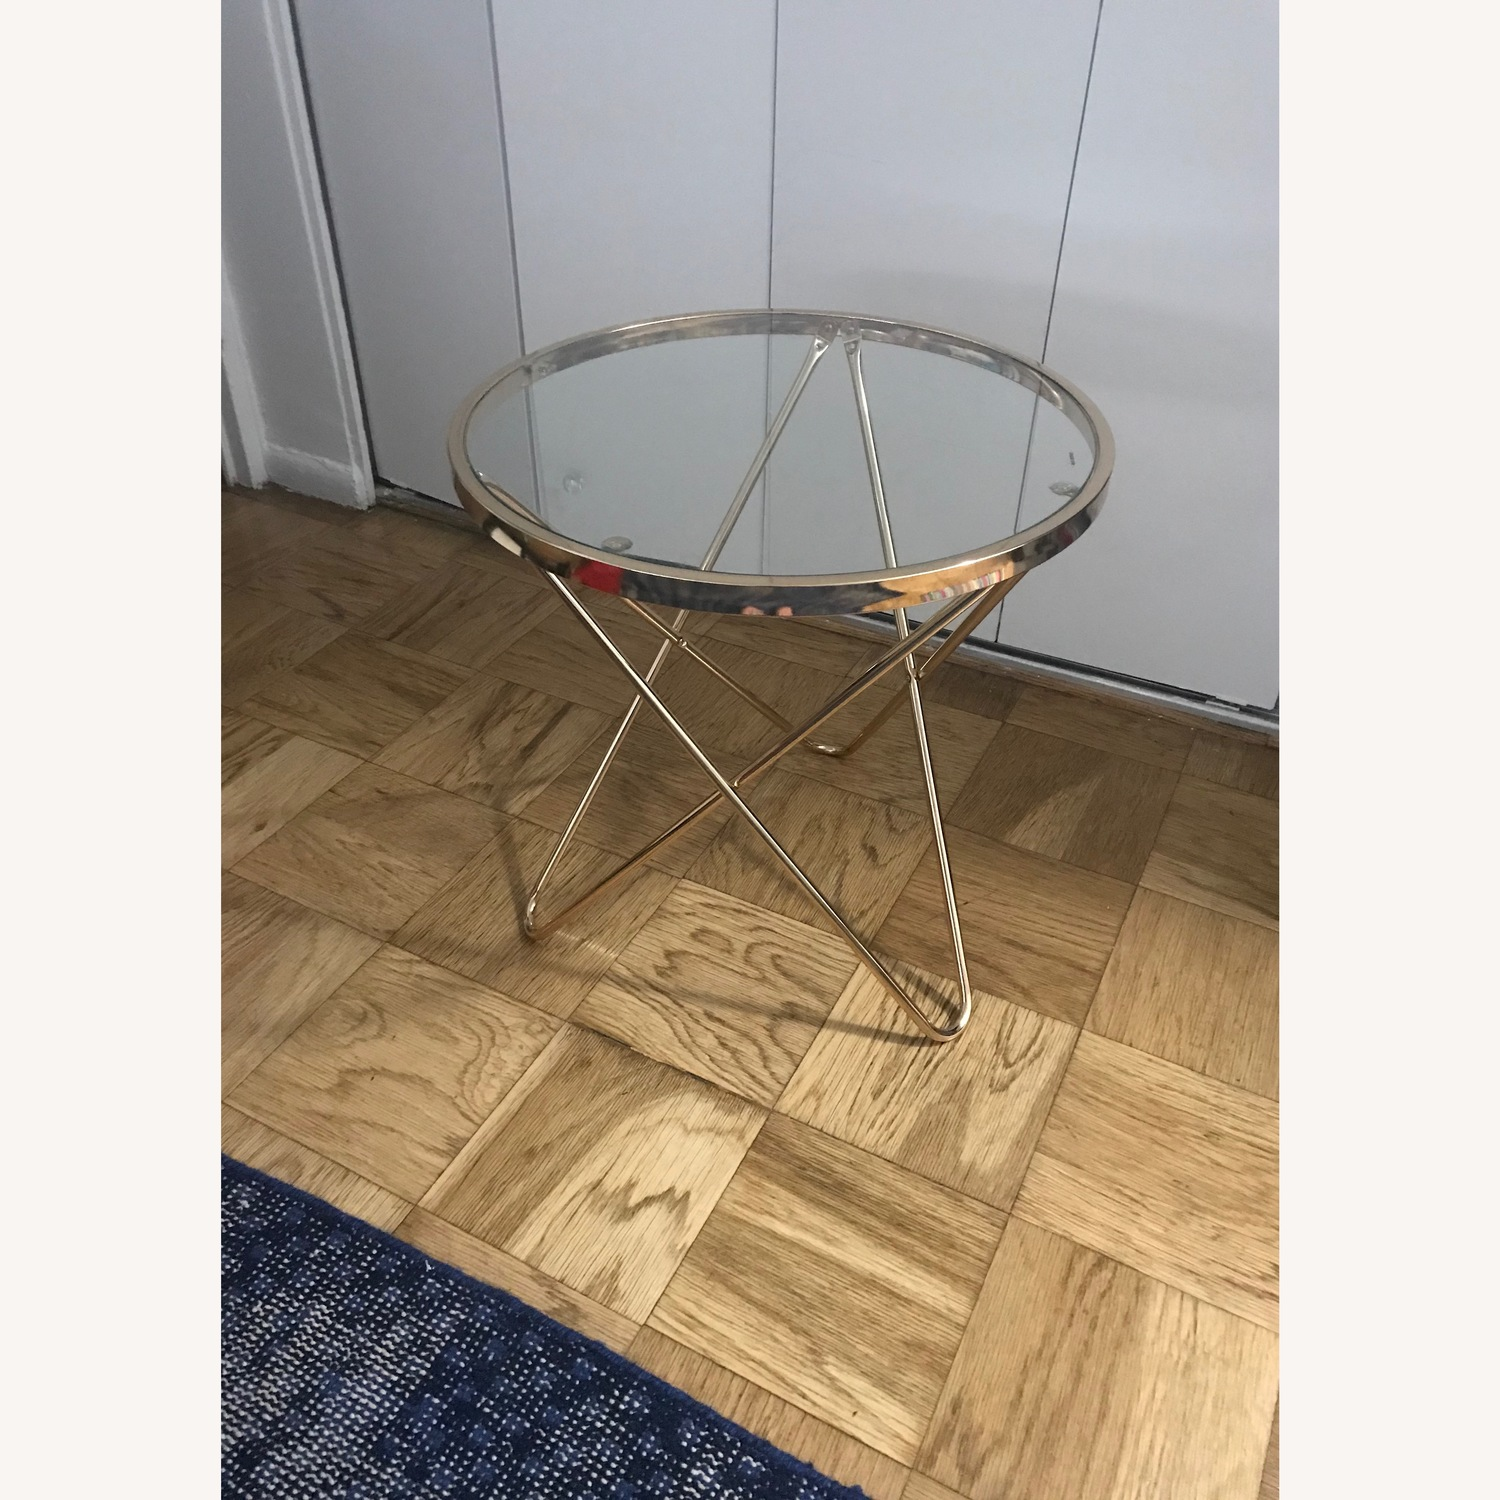 Round Rose Gold Metal Side Table w/ Glass Top - image-4